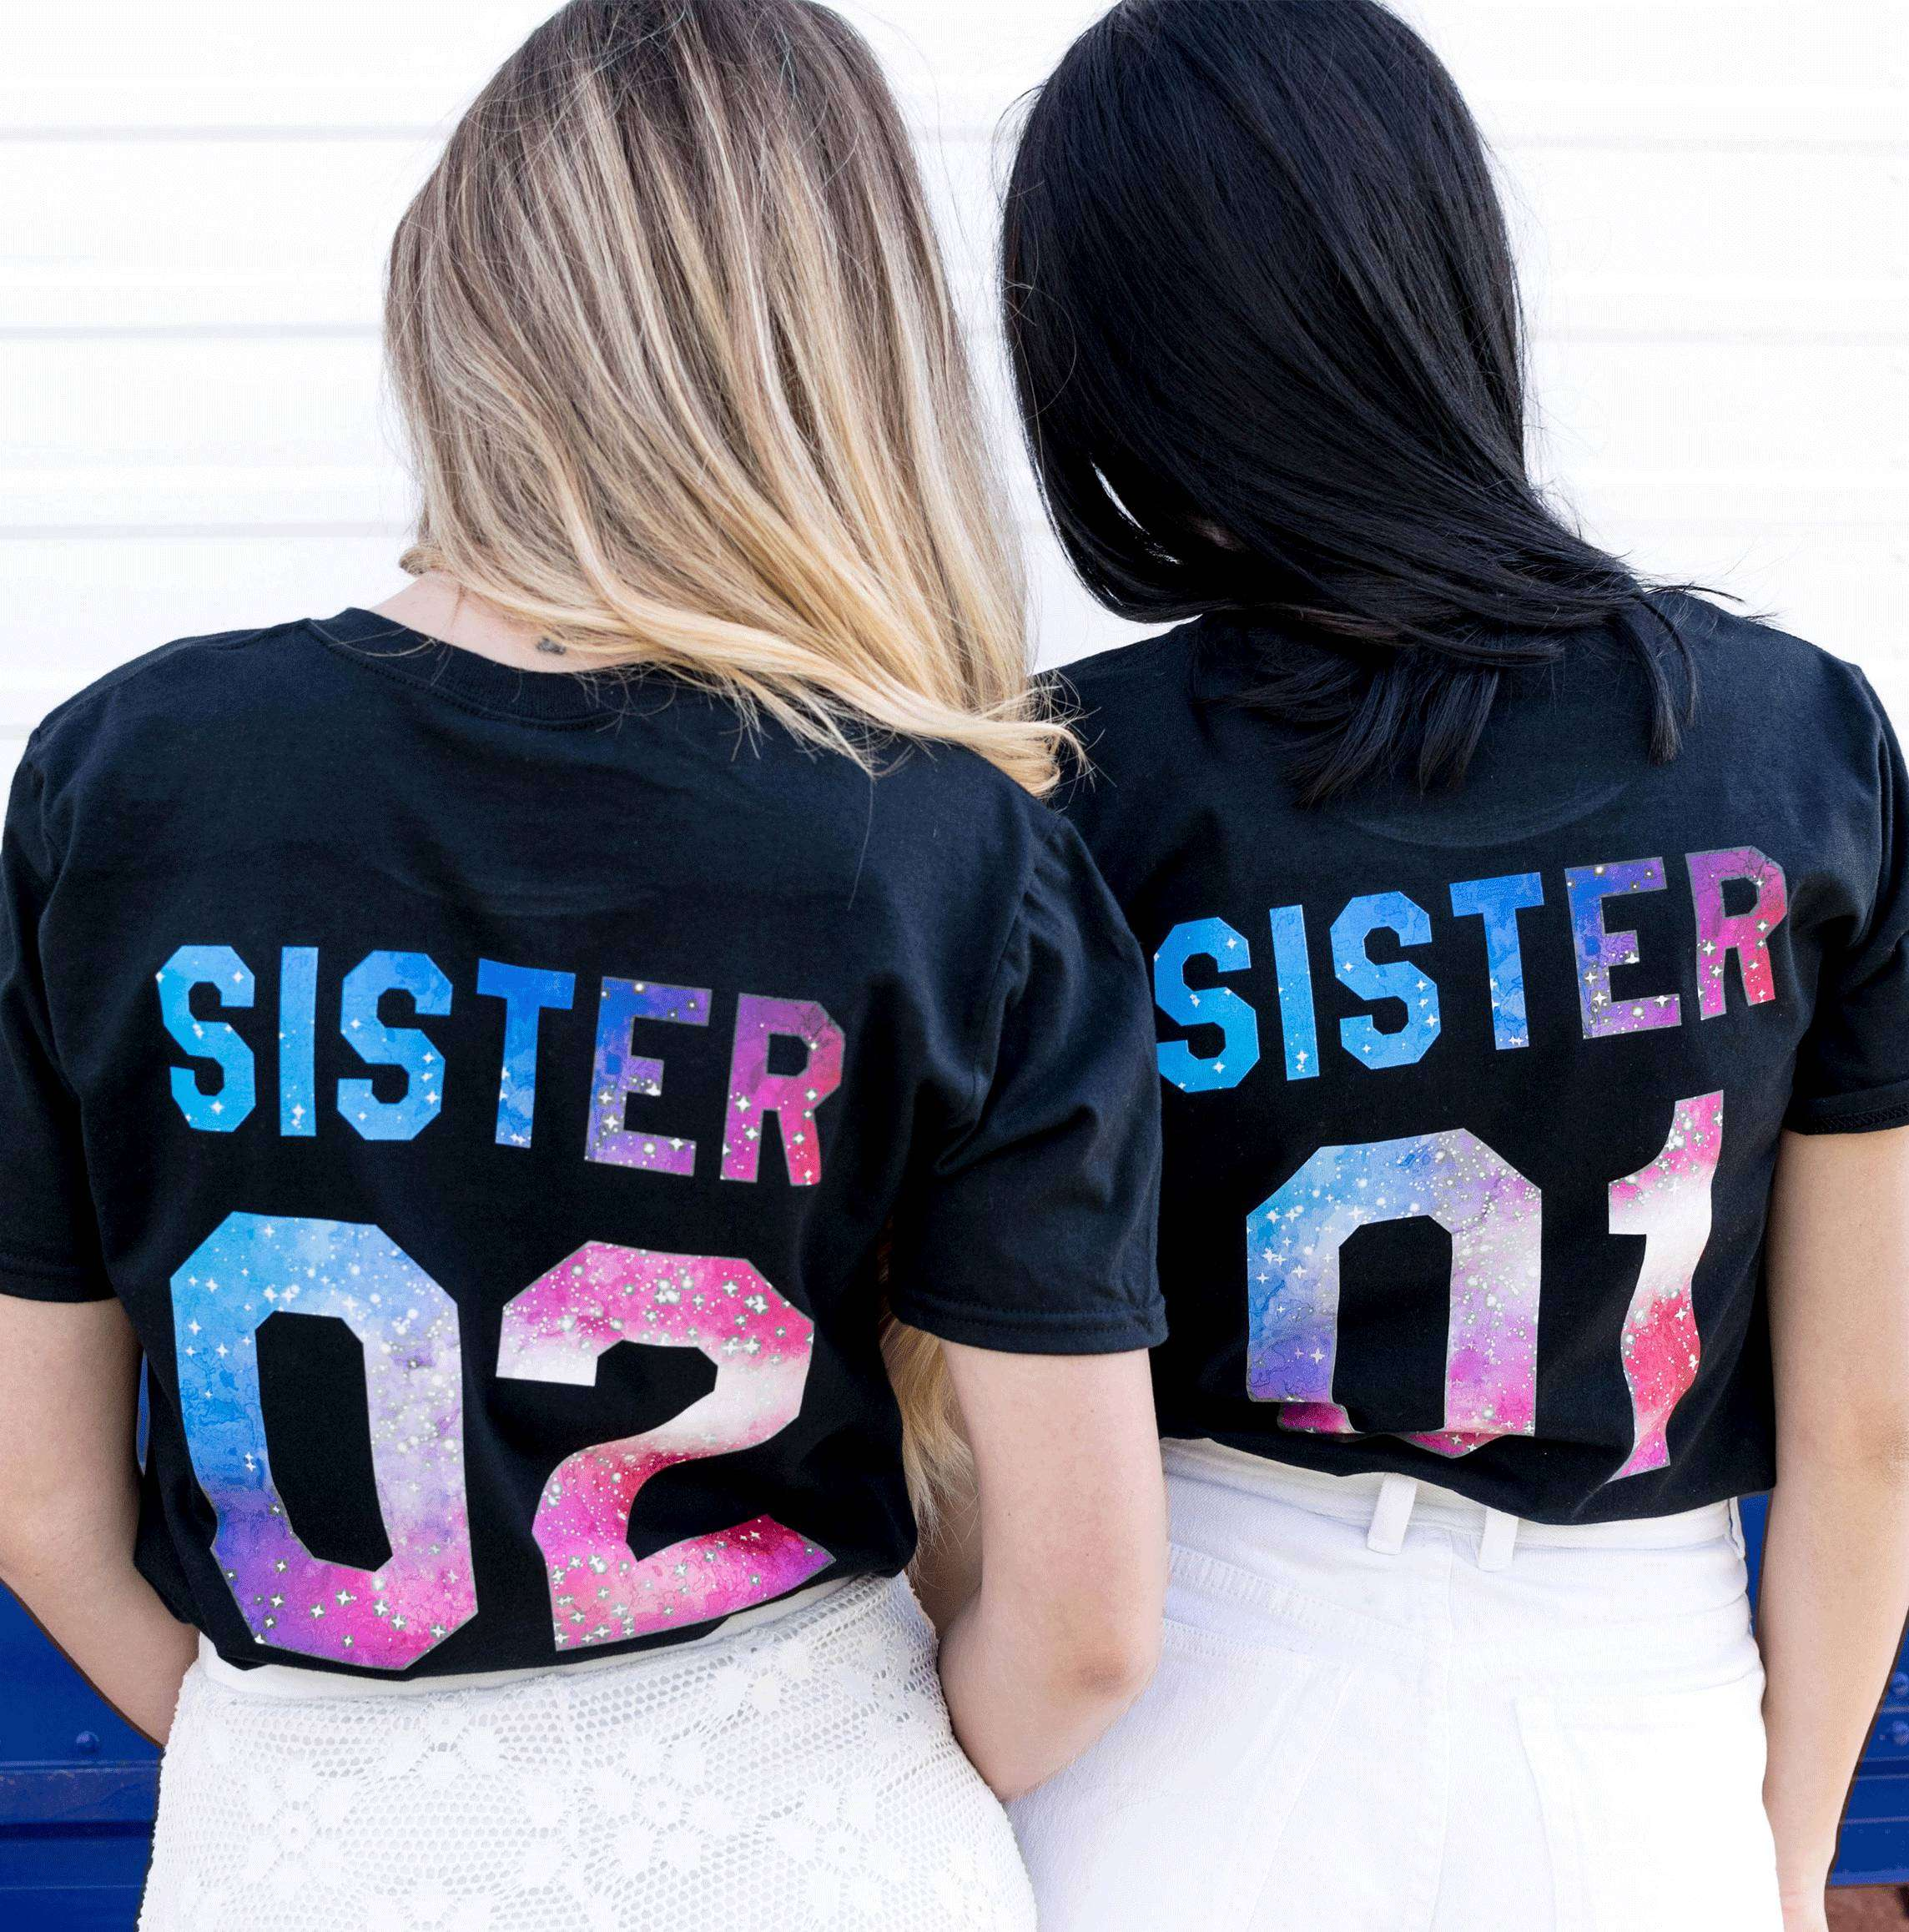 5f39a3f9 Sister 01 Sister 02 Patterns, Matching Best Friends Shirts